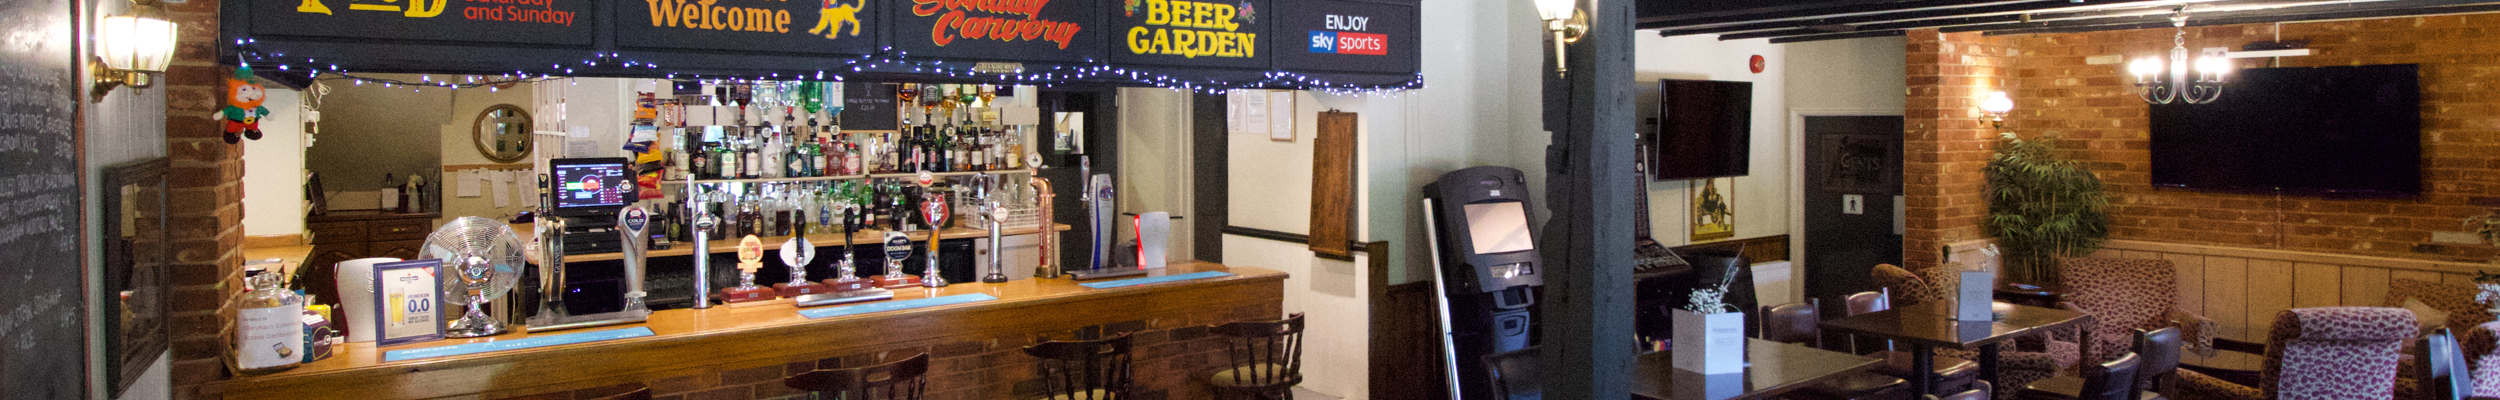 The Bar // The bar area of the Plough Inn with HD TV and wide selection of drinks